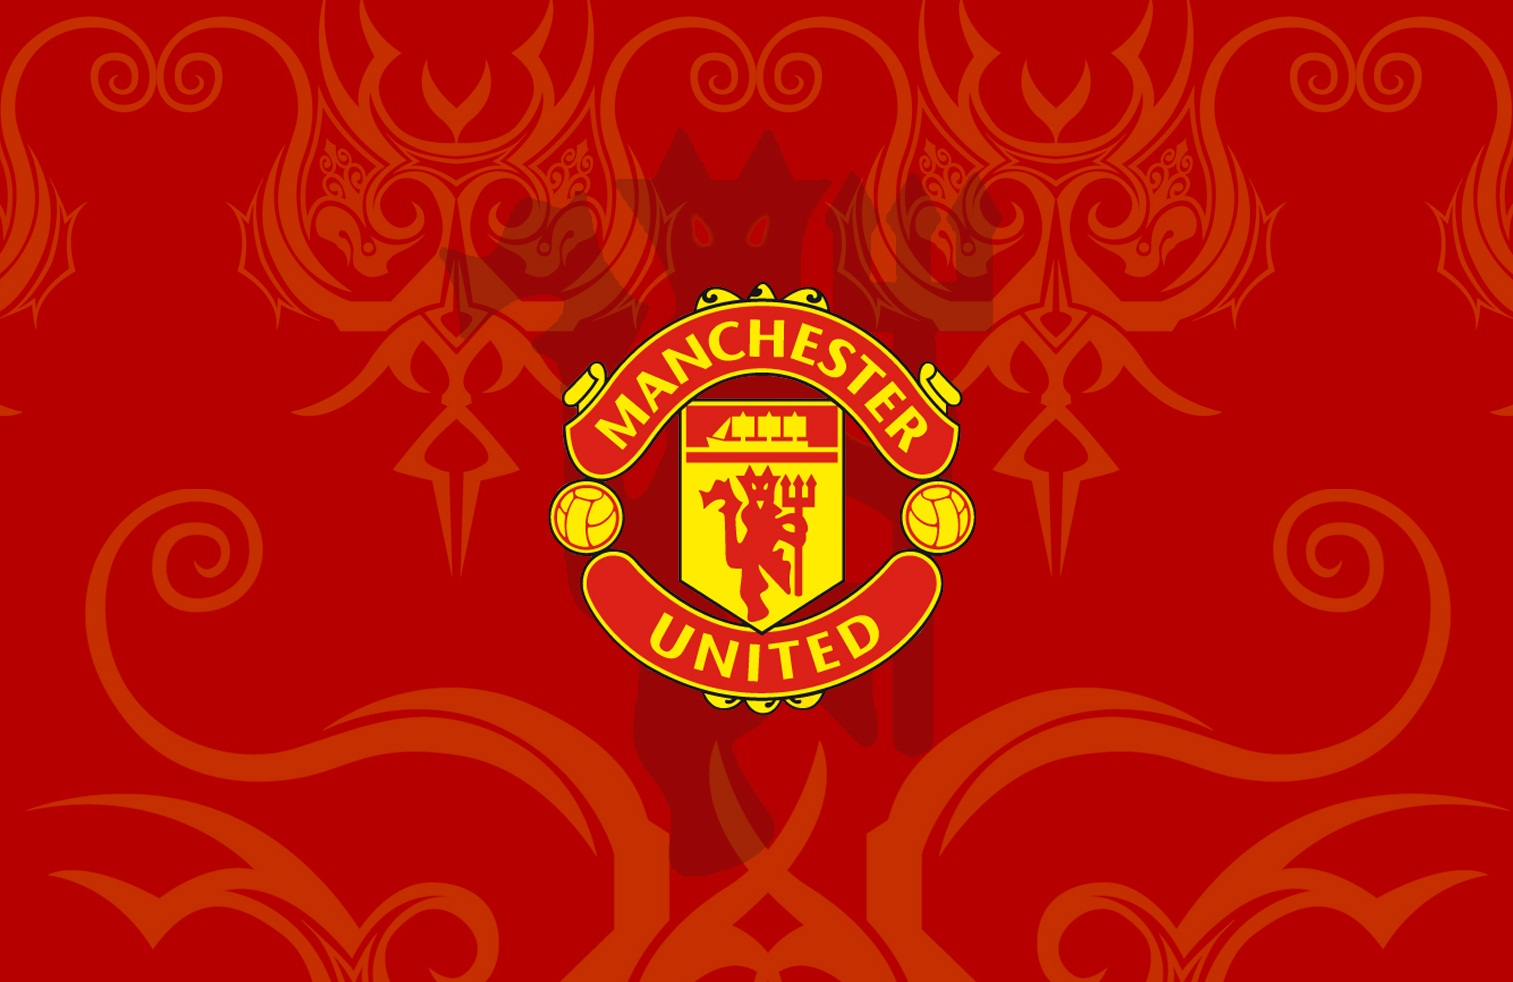 Manchester united hd wallpapers 2013 2014 all about football - Manchester united latest wallpapers hd ...